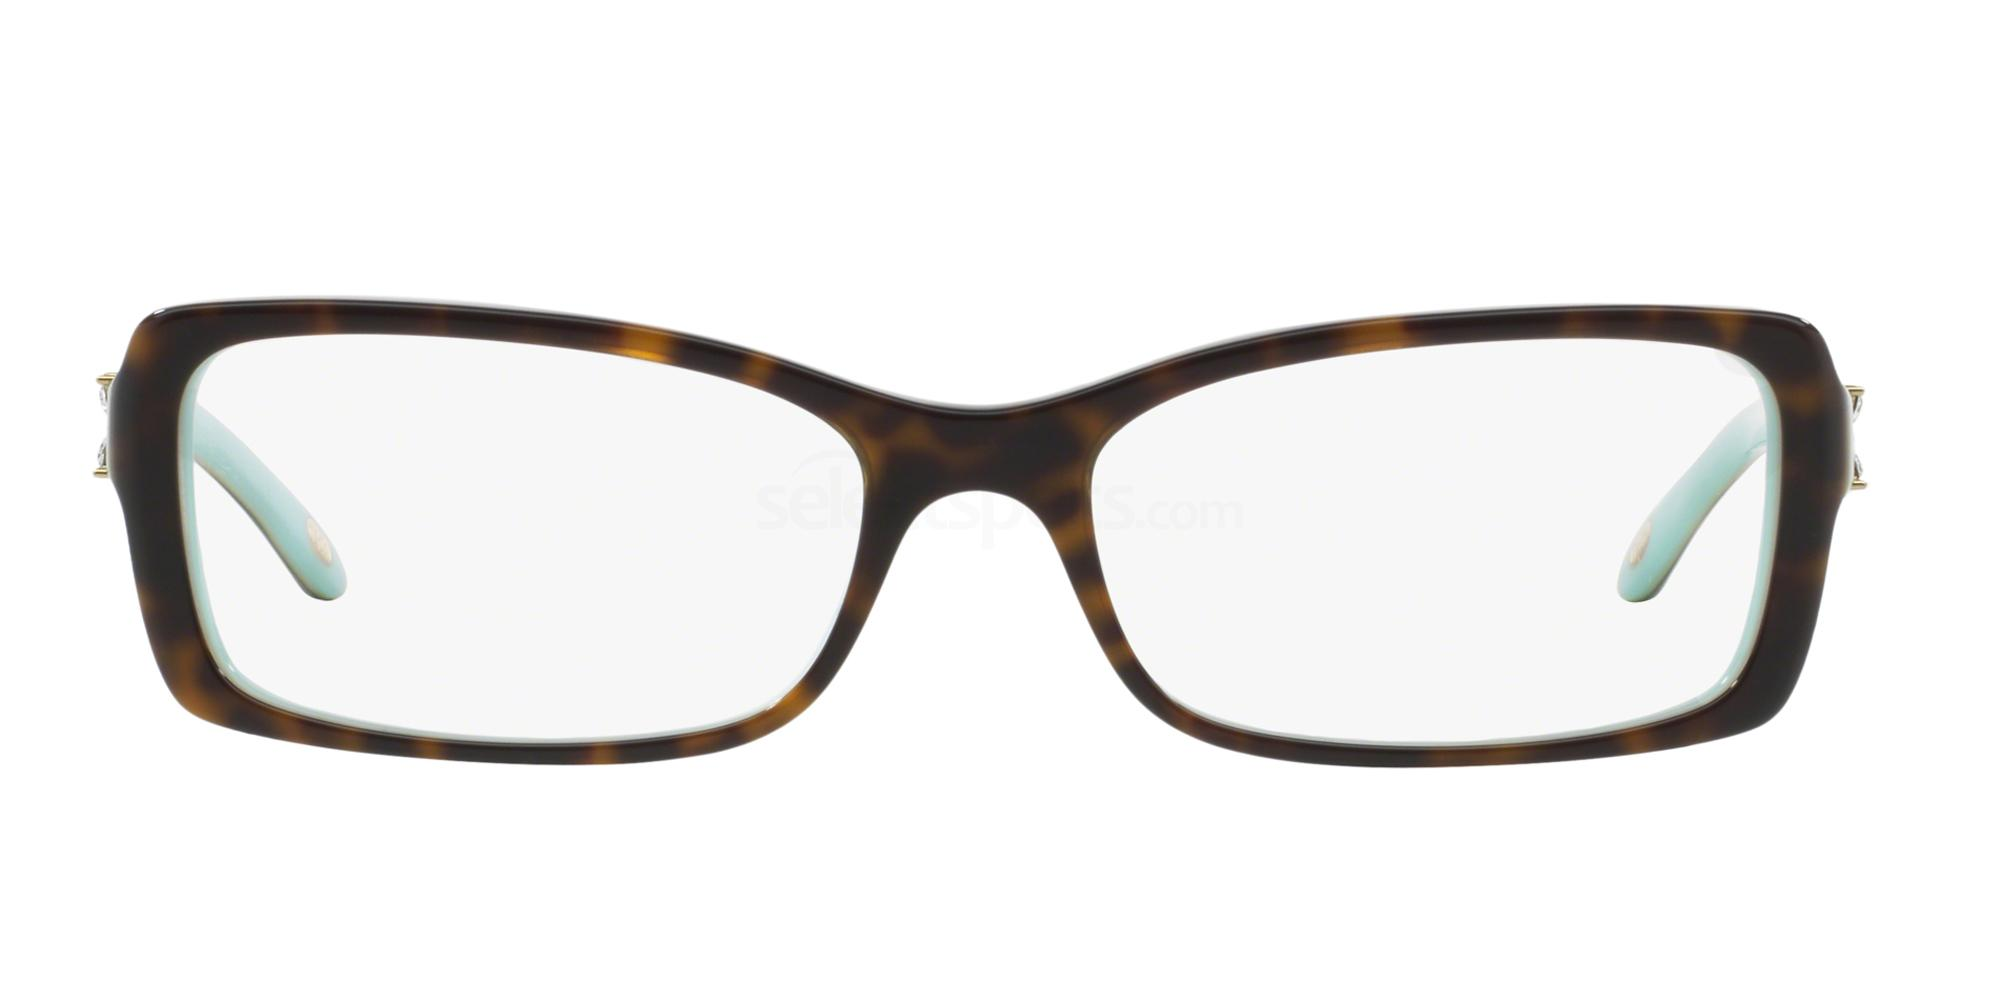 8134 TF2091B Glasses, Tiffany & Co.